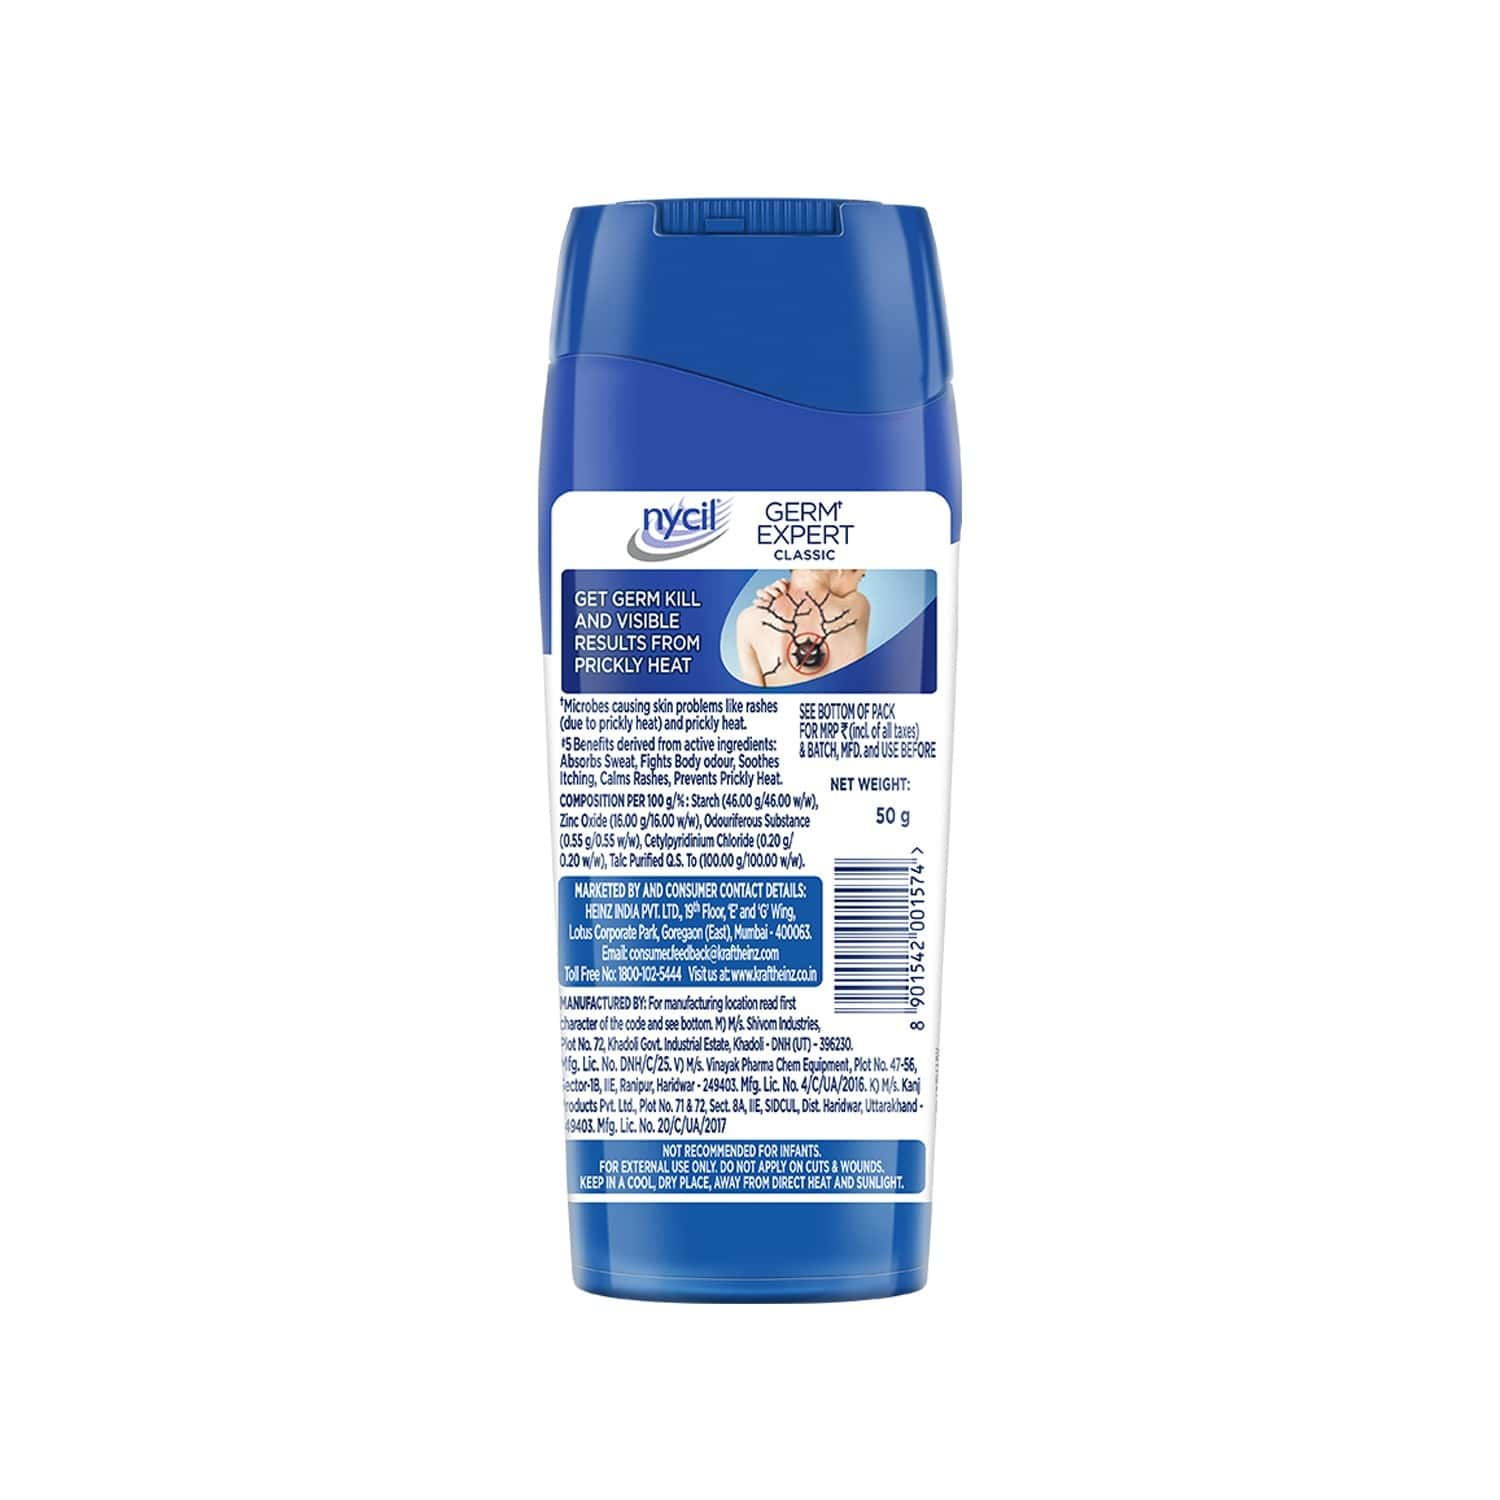 Nycil Classic Caring & Protection Prickly Heat Powder - 50gm